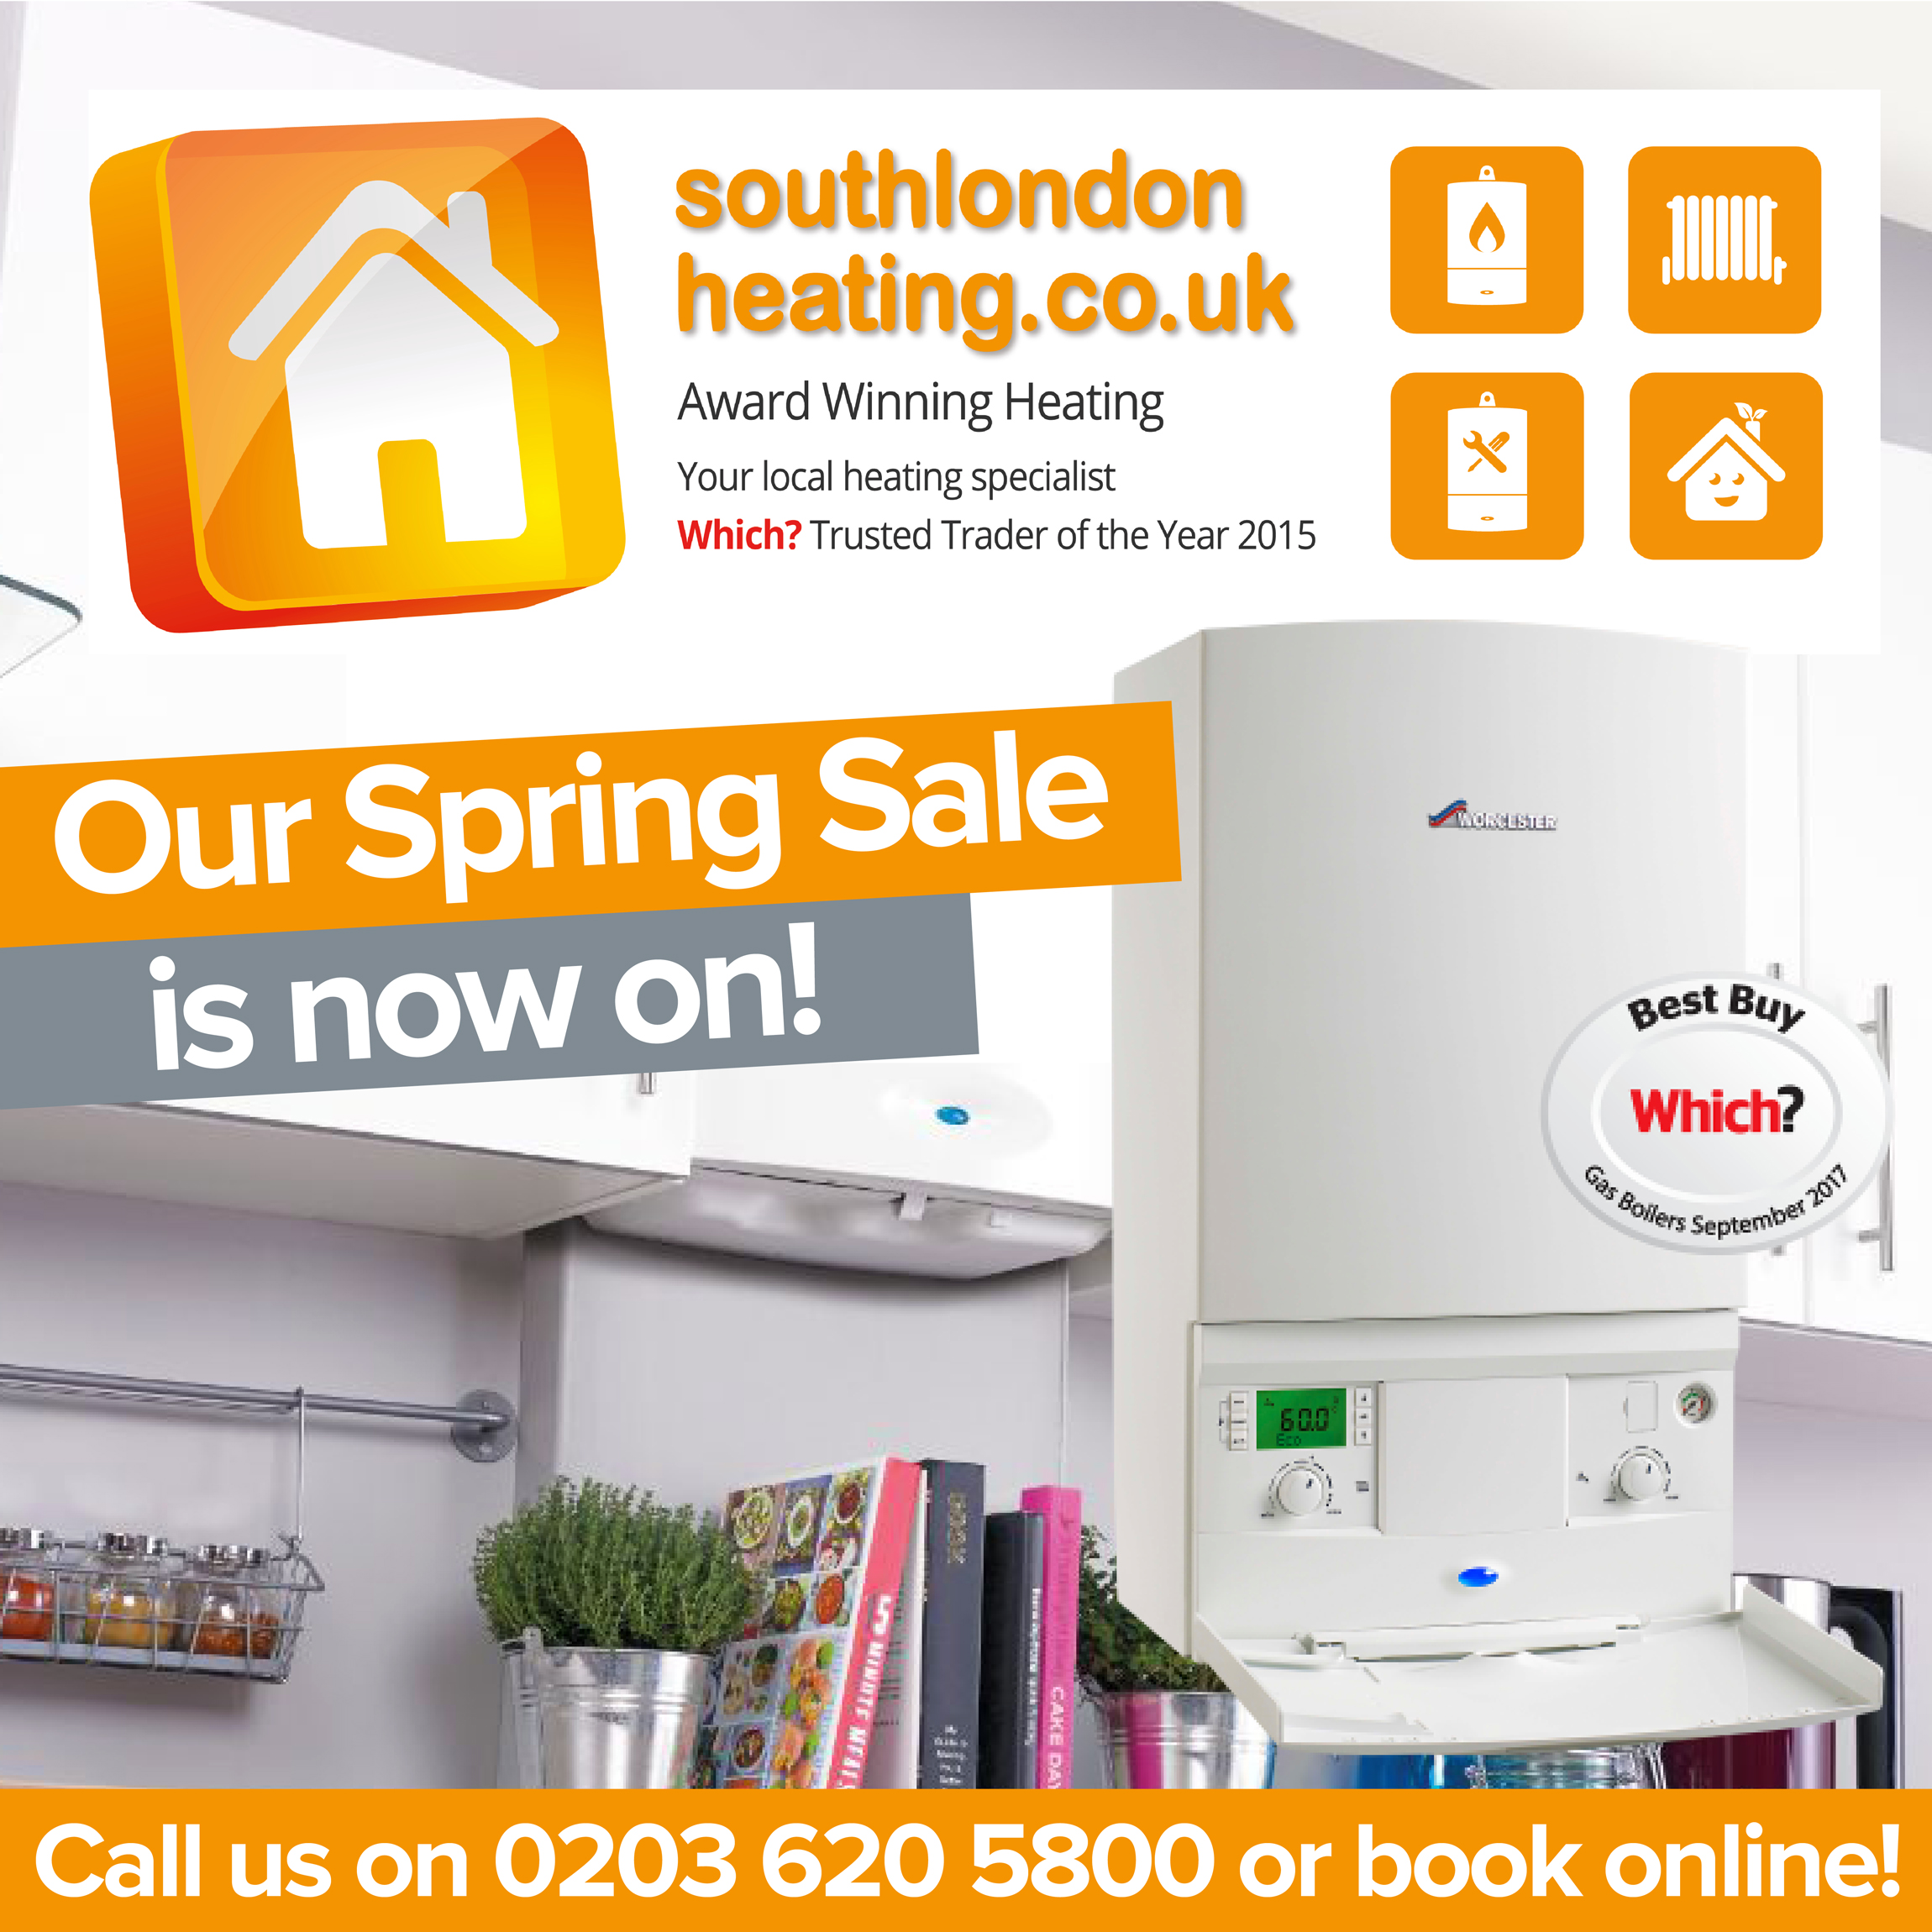 South London Heating - Our Spring Sale is now on!